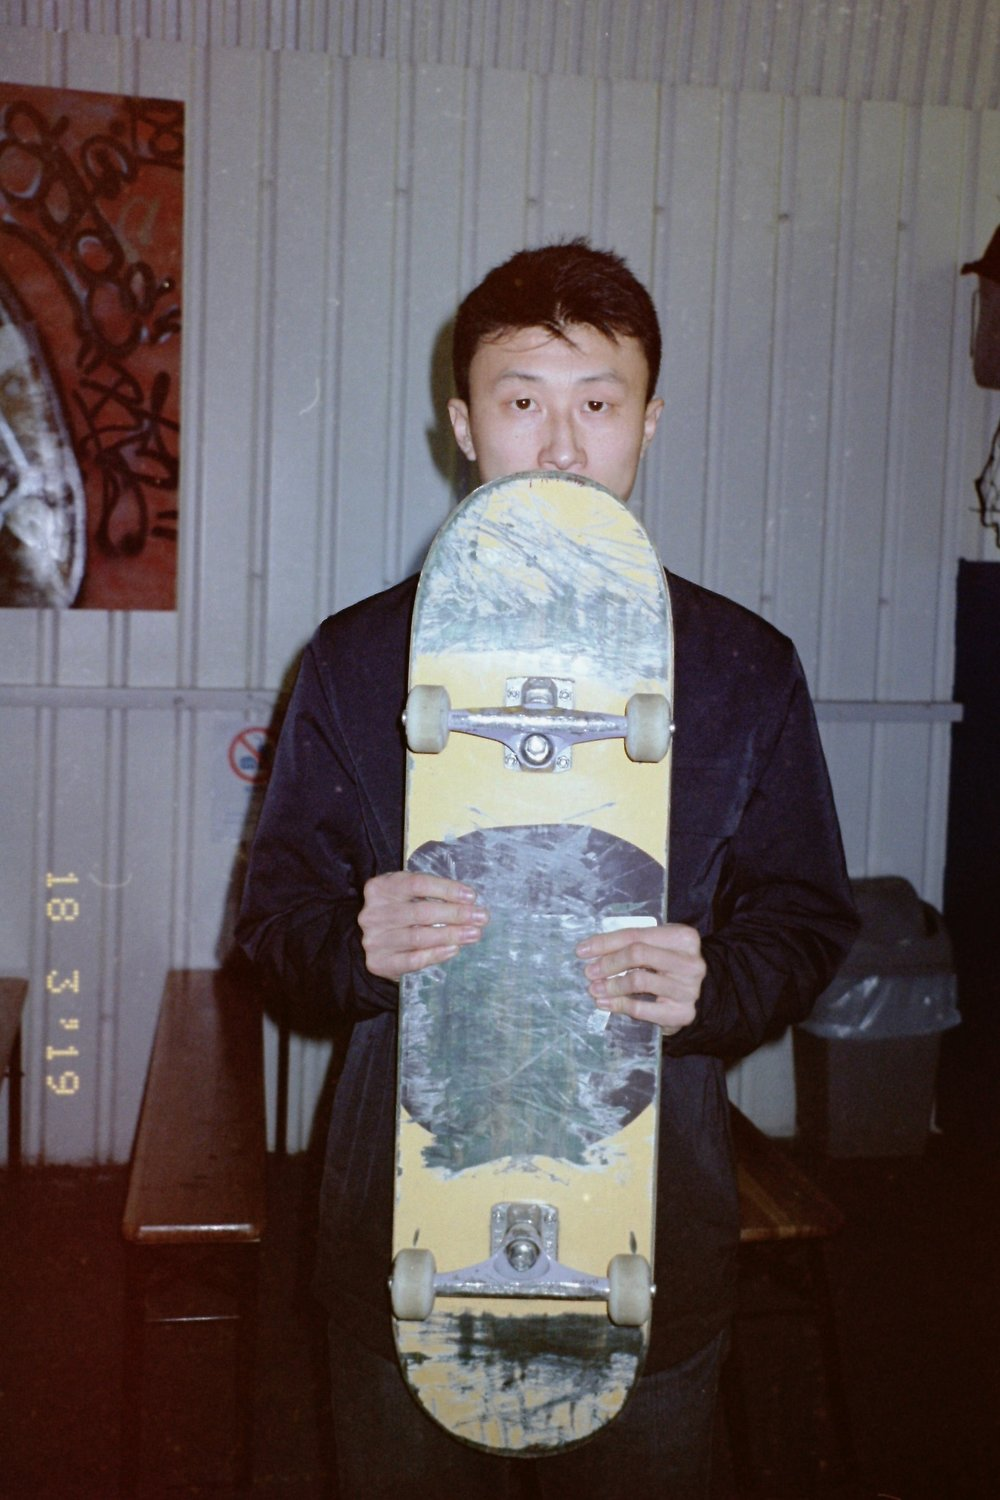 Bing Liu the director of Minding The Gap, a skate documentary that tackles issues of domestic abuse in a new and interesting way.